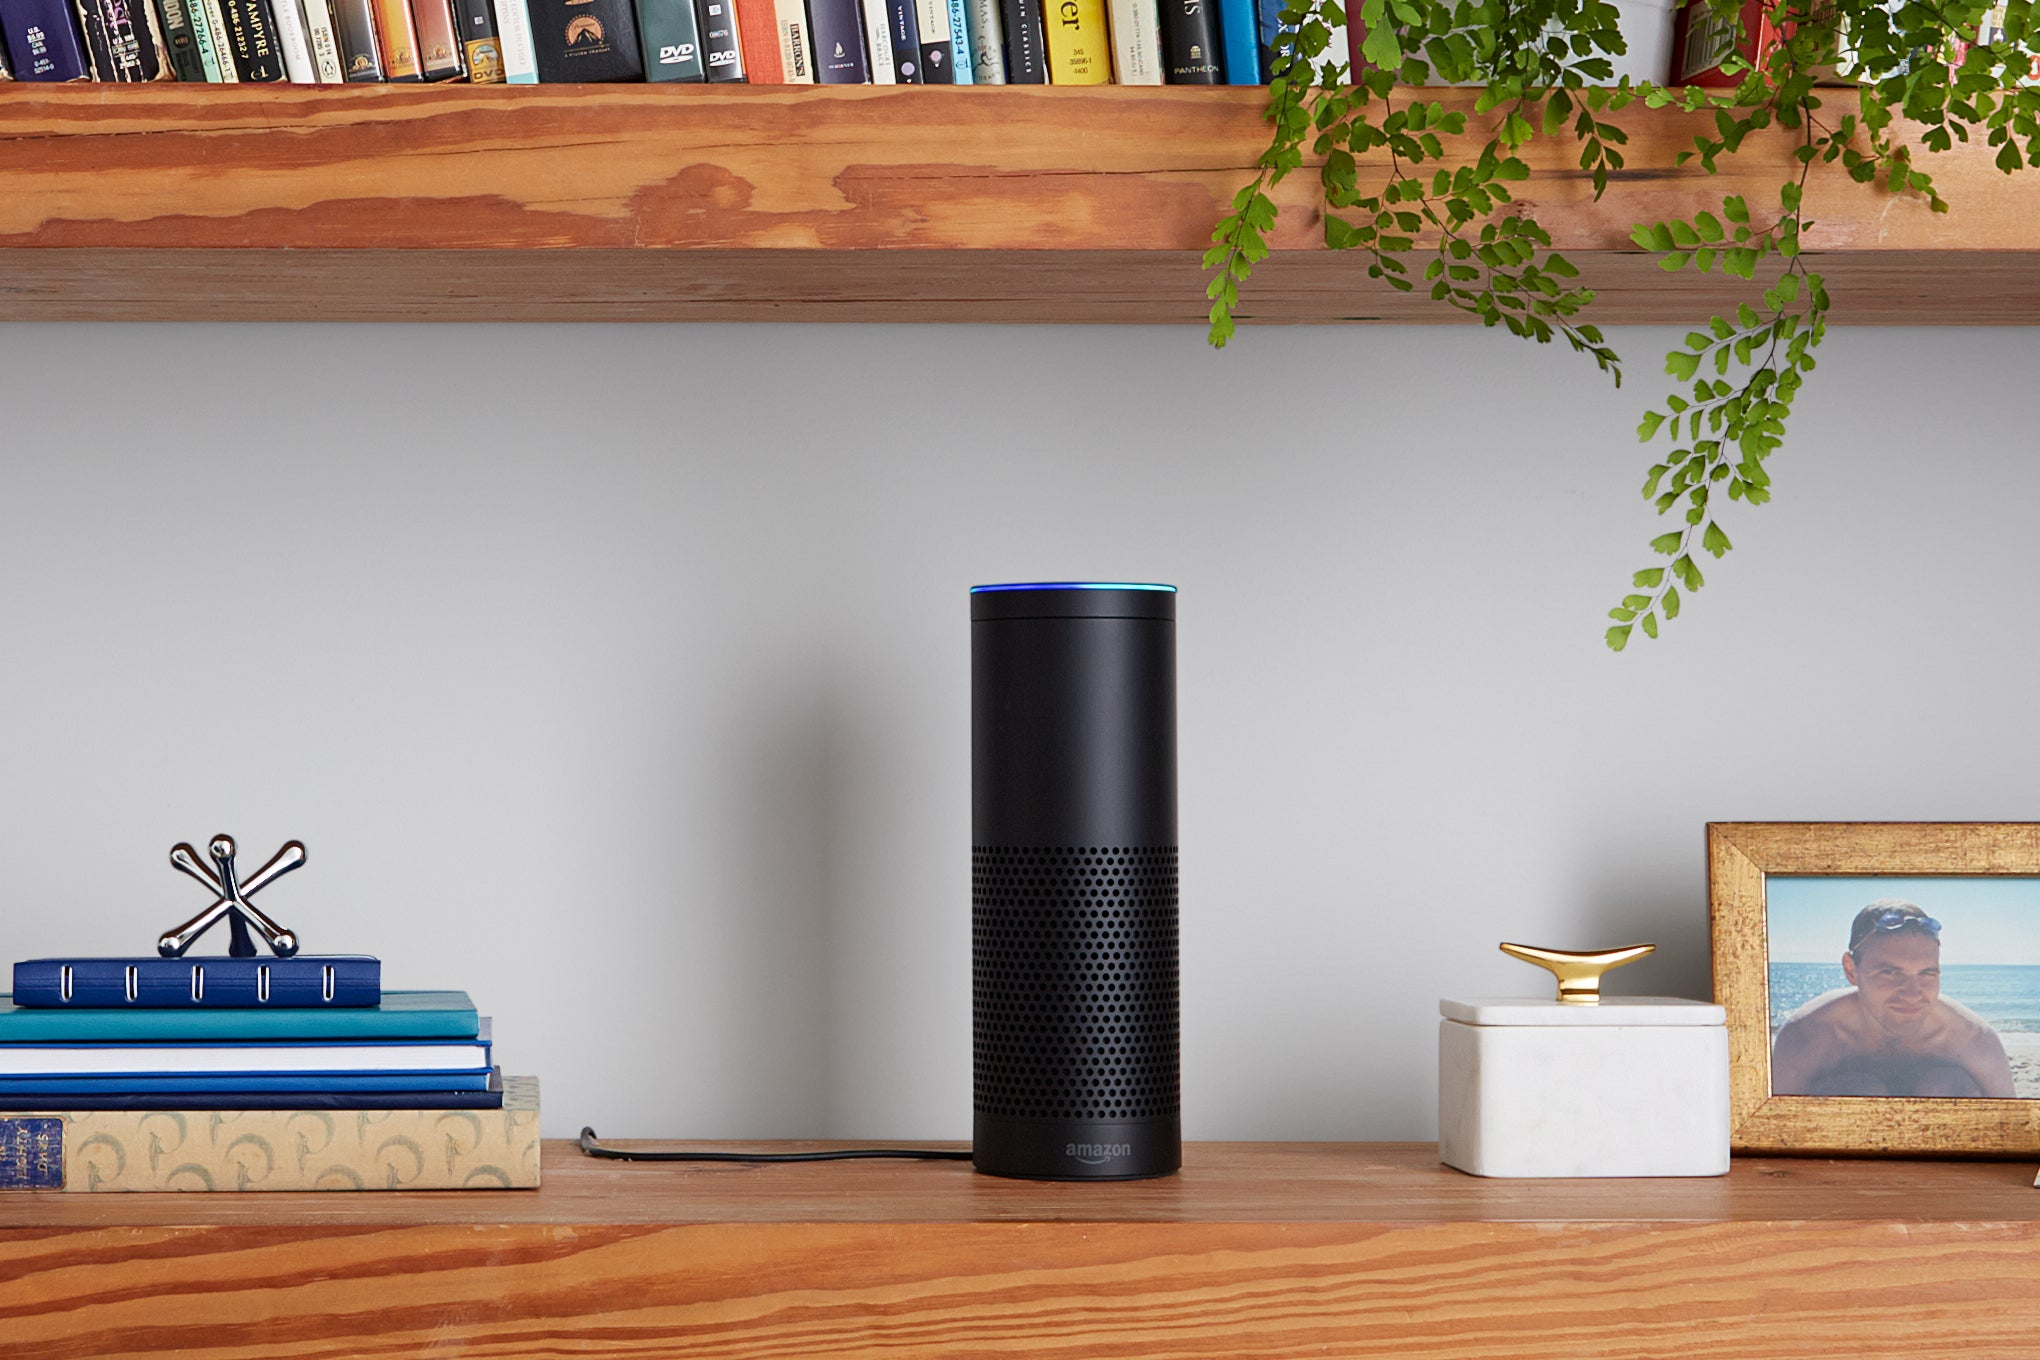 An Amazon Echo speaker on a bookshelf, next to a stack of books and a picture frame